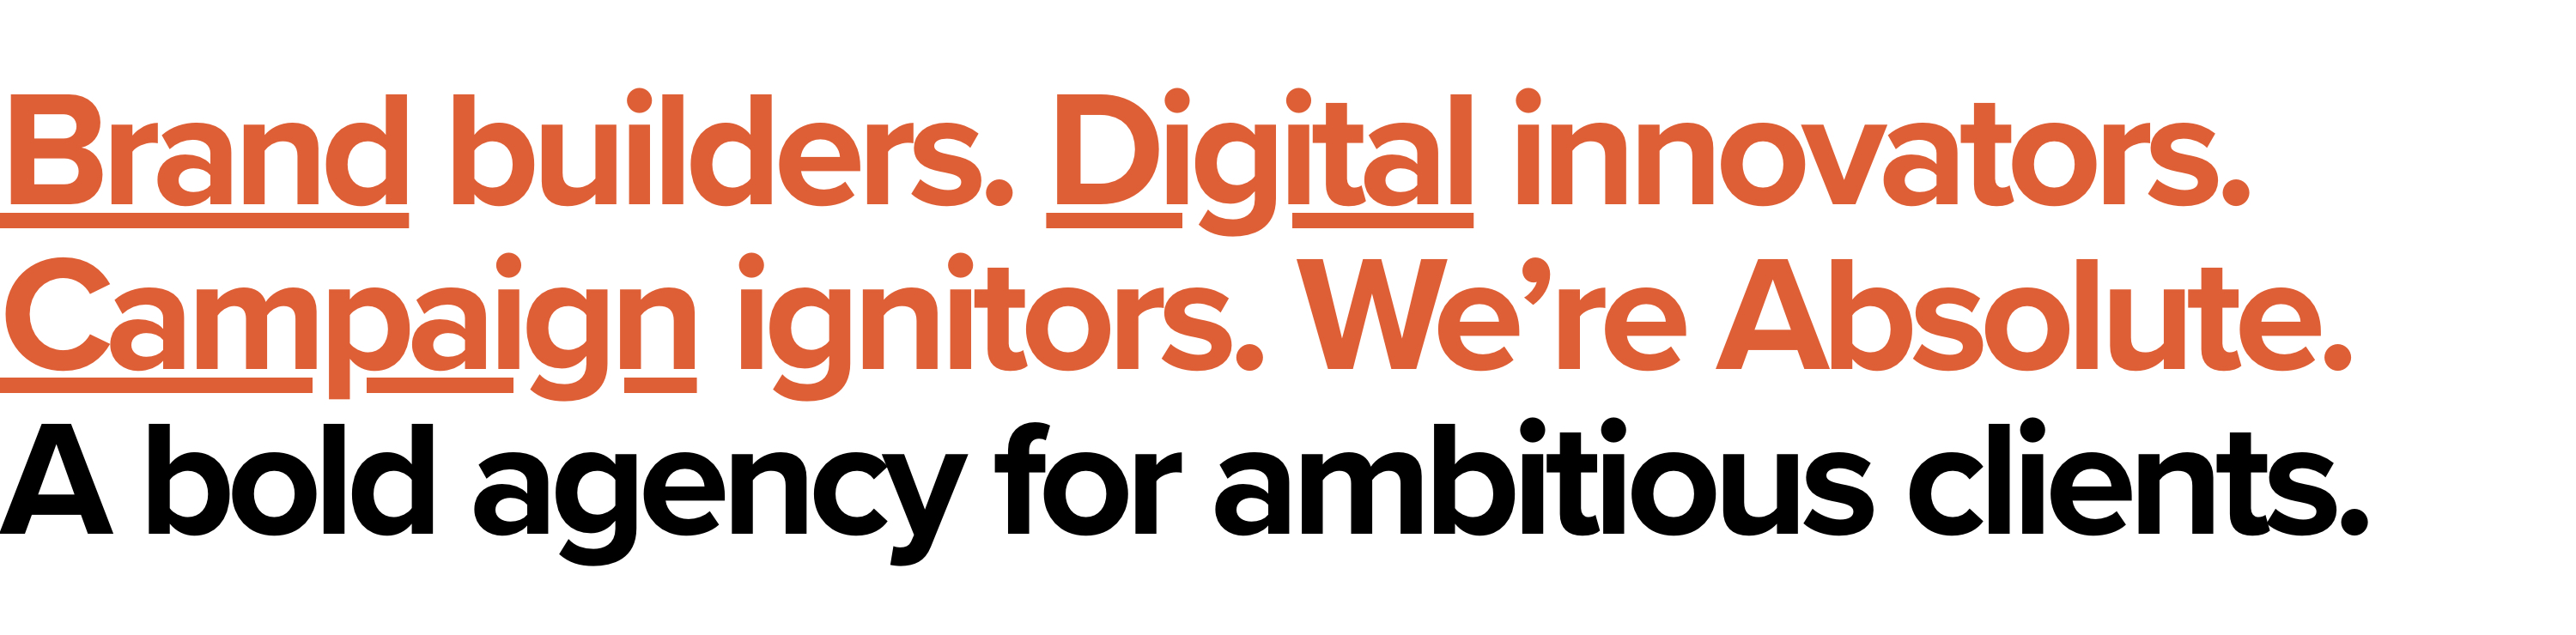 Brand builders. Digital innovators. Campaign ignitors. We're Absolute. A bold agency for ambitious clients.